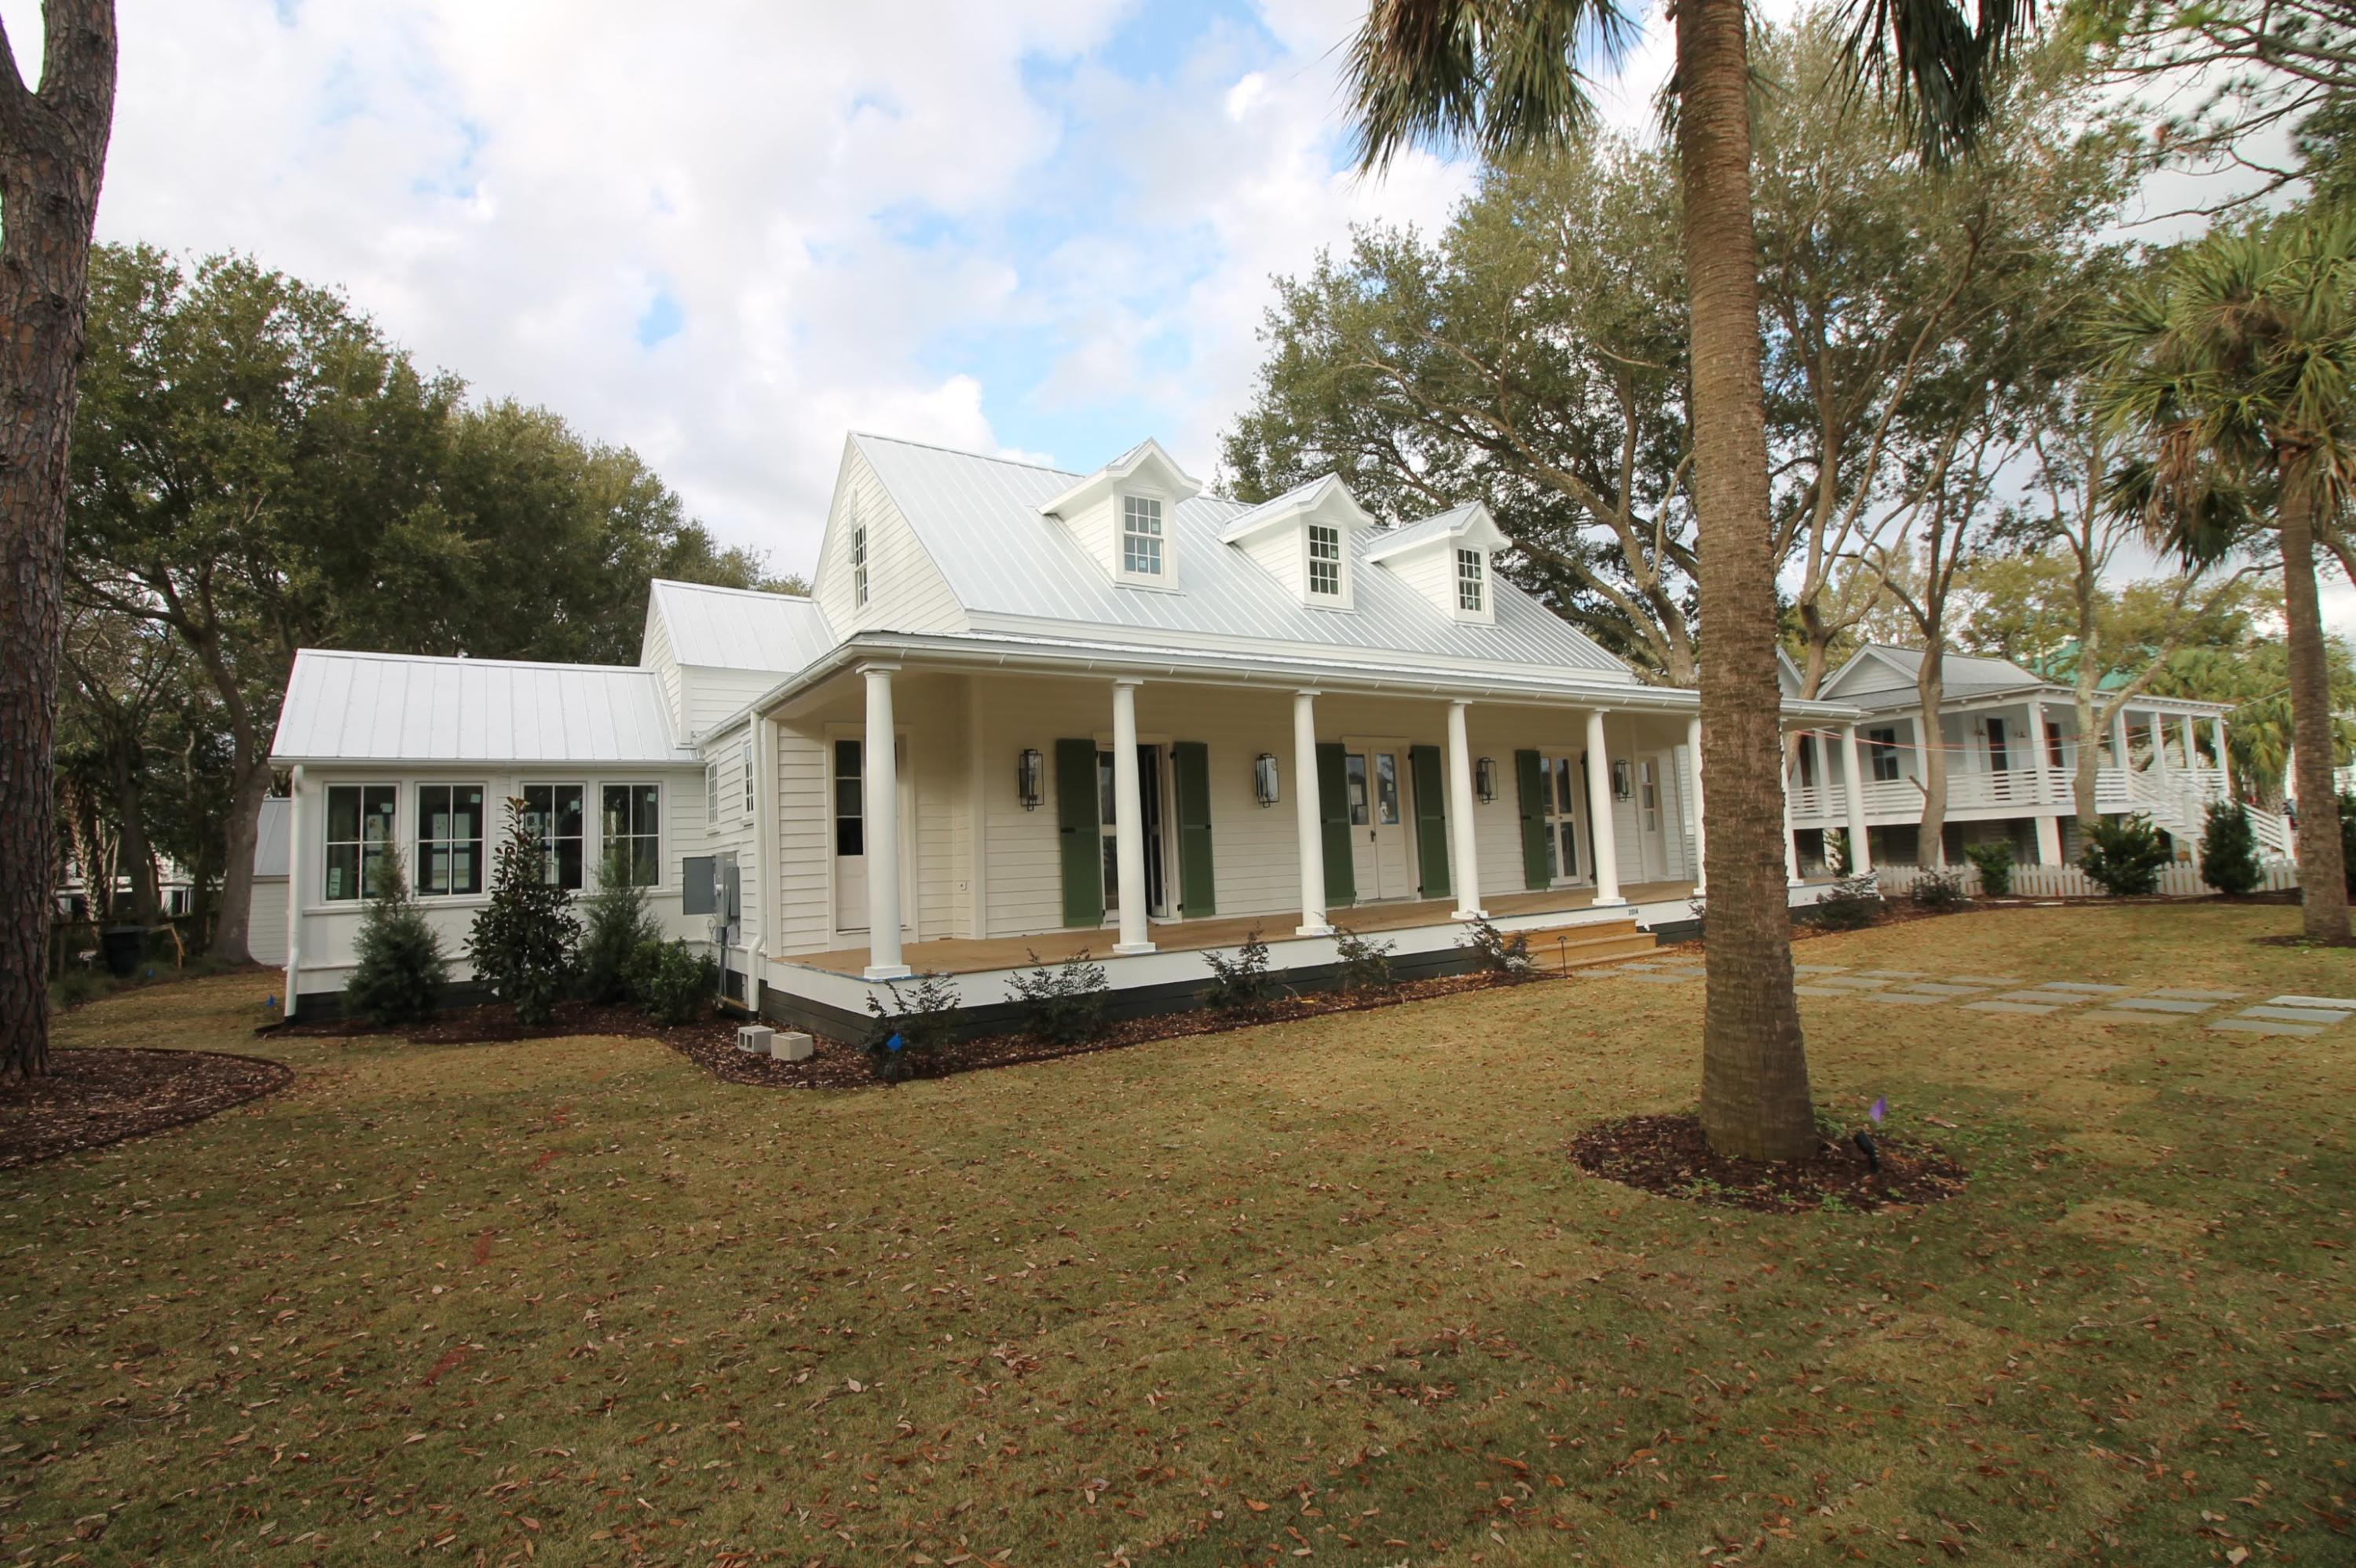 Sullivans Island Homes For Sale - 2014 Middle, Sullivans Island, SC - 18